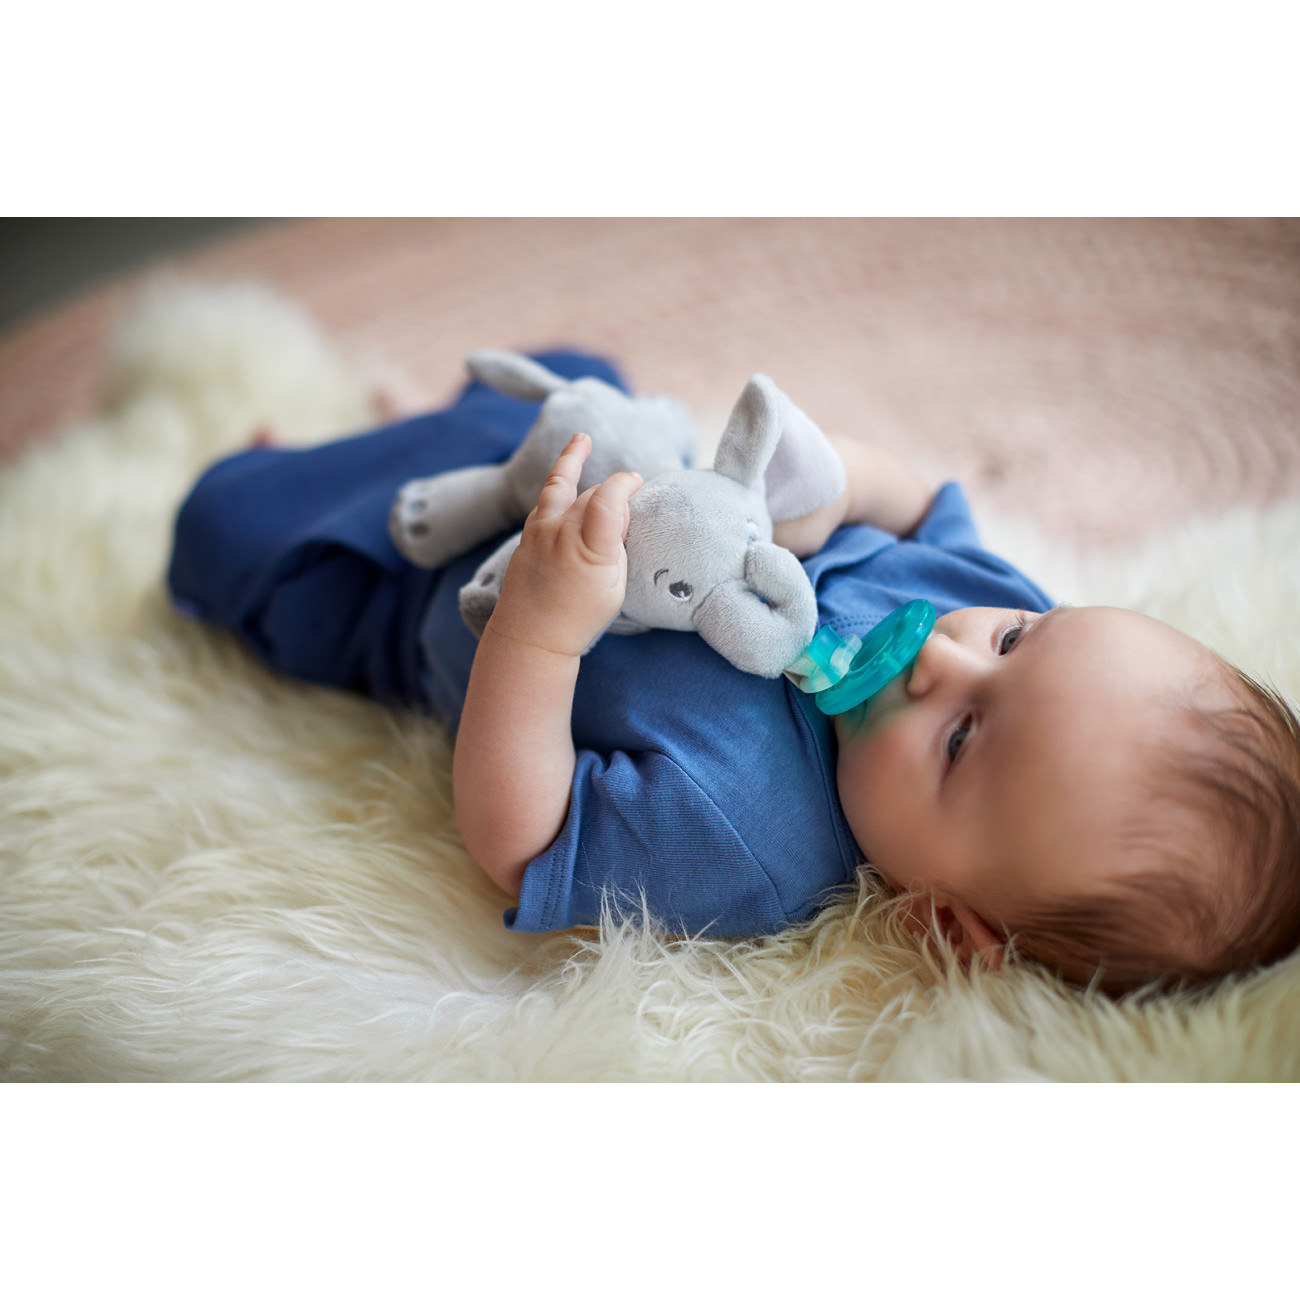 """The Soothie silicone pacifiers are especially designed to be extra comfortable for newborns up through three months, but the stuffed animal is compatible with several sizes of pacifiers. And of course it's washable!Promising review: """"My two-month-old daughter is obsessed with this Soothie and snuggle buddy. It's large enough for her to clumsily grasp and lightweight enough for her to position the pacifier back in her mouth if it falls out. I love how easy it is to detach the Soothie from the plush monkey, allowing me to clean each part separately as needed. This will also come in handy when the size of my daughter's pacifier changes or when she weans off it and can keep her snuggle buddy!"""" —Lu87Get it from Walmart for .95+ (available as an elephant or giraffe)."""